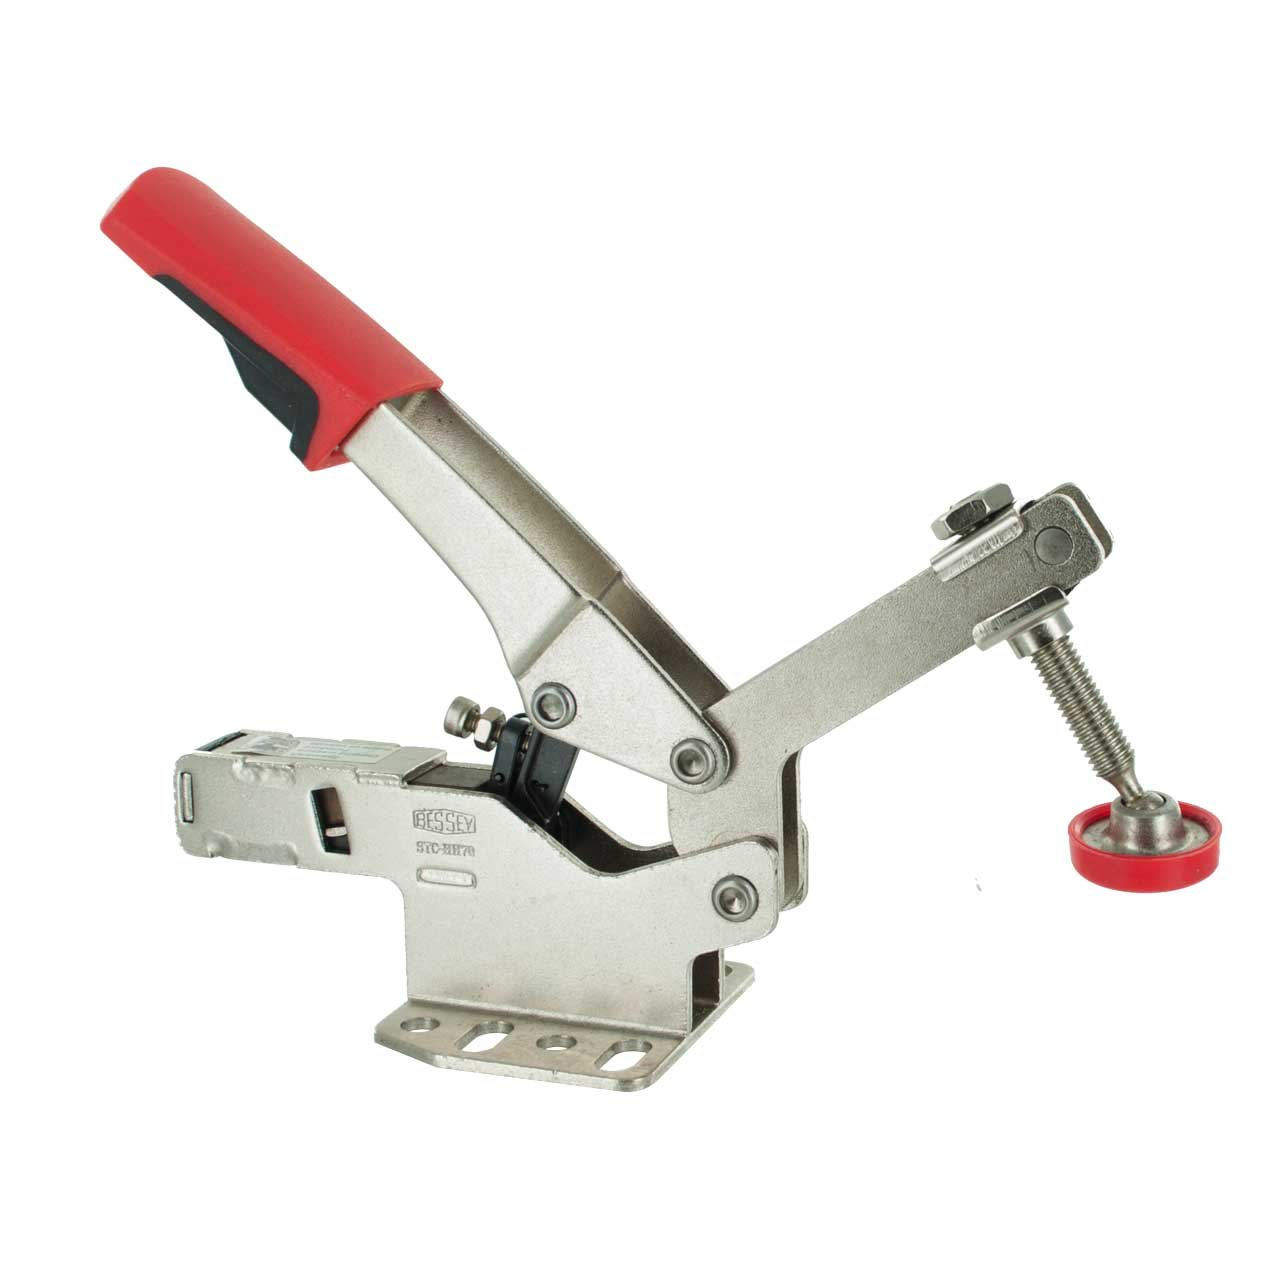 Bessey STC-HH70 Horizontal Auto-Adjust Toggle Nickel Plated Clamp, Silver